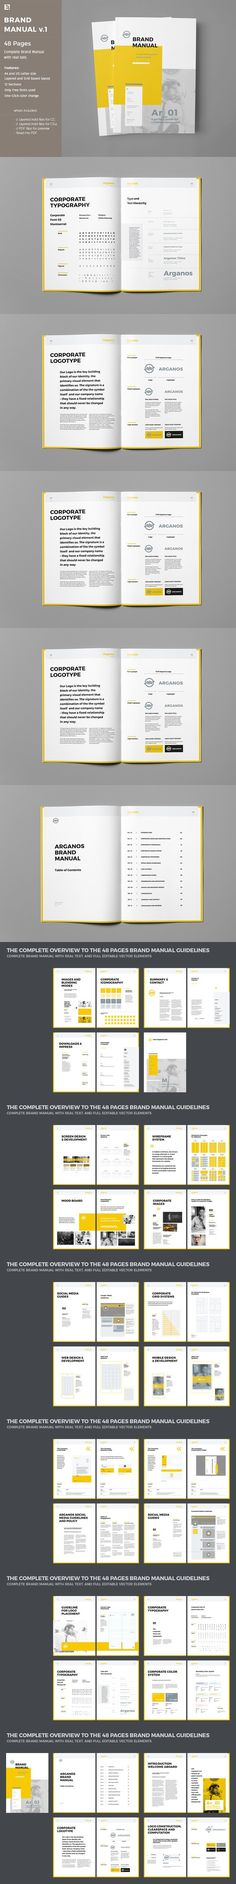 Brand Manual. Business Infographic